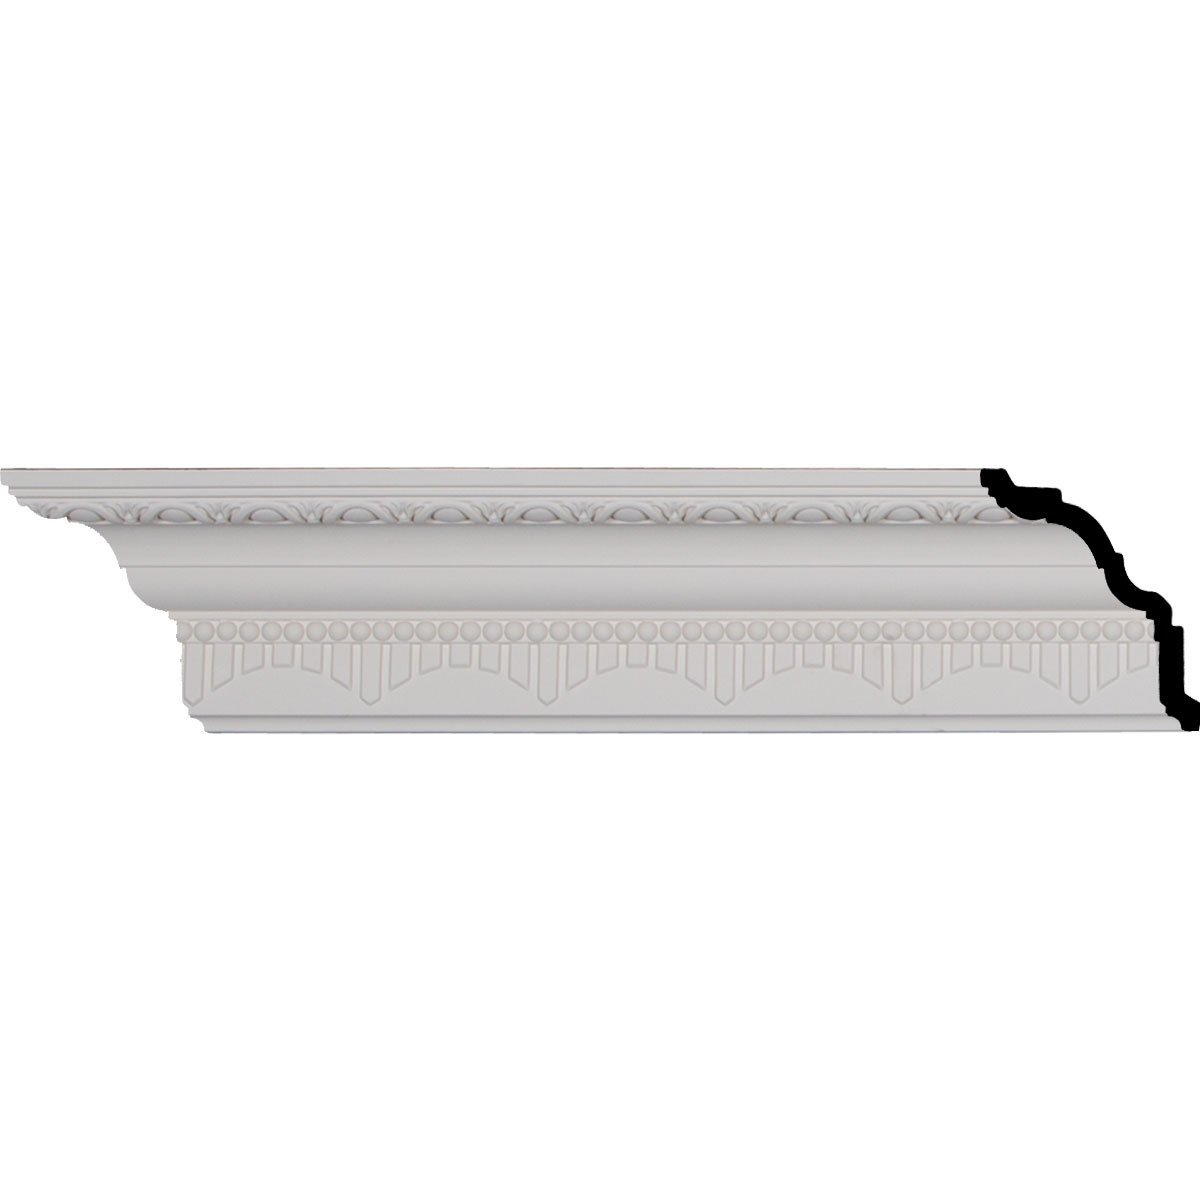 4 1/8'' H x 4'' P x 5 1/2'' F x 94 1/2'' L, (3 3/8'' Repeat), Dijon Crown Moulding (2-Pack)